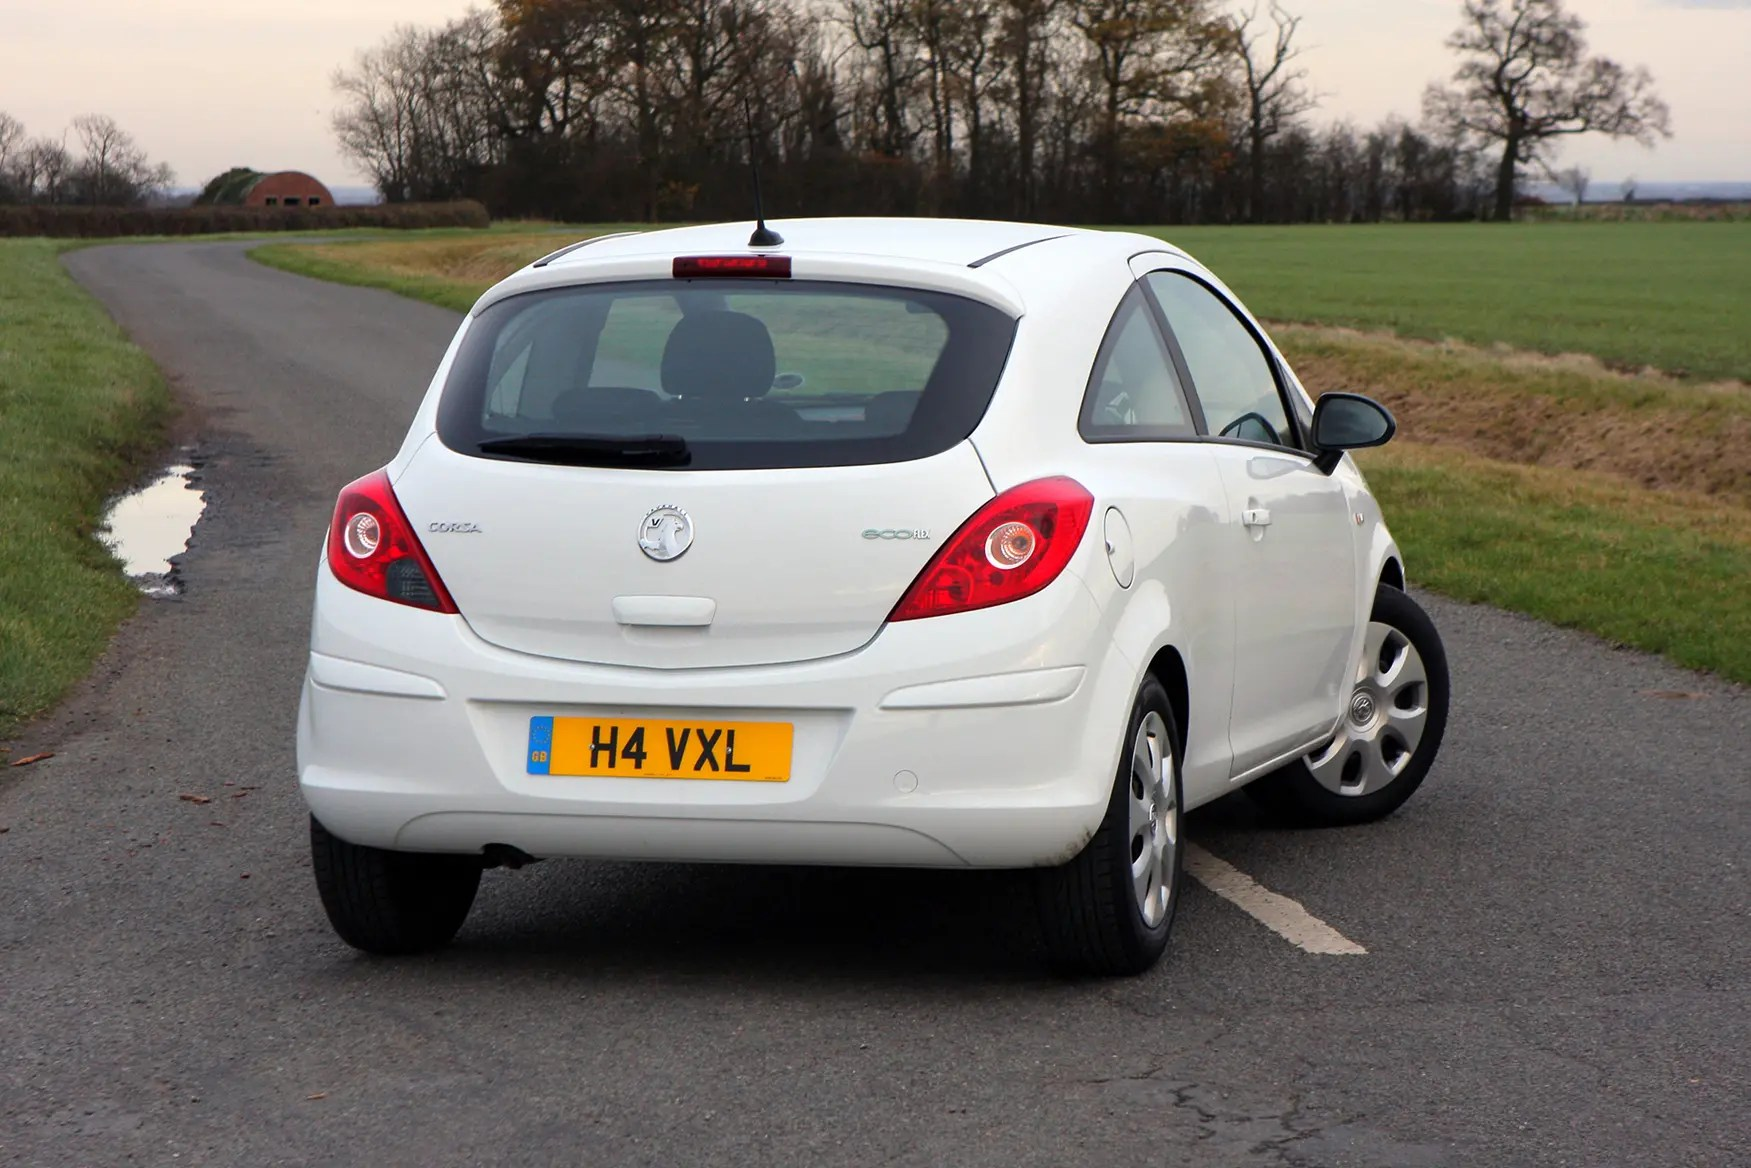 Opel Corsa C Interieur Used Vauxhall Corsa Hatchback 2006 2014 Review Parkers